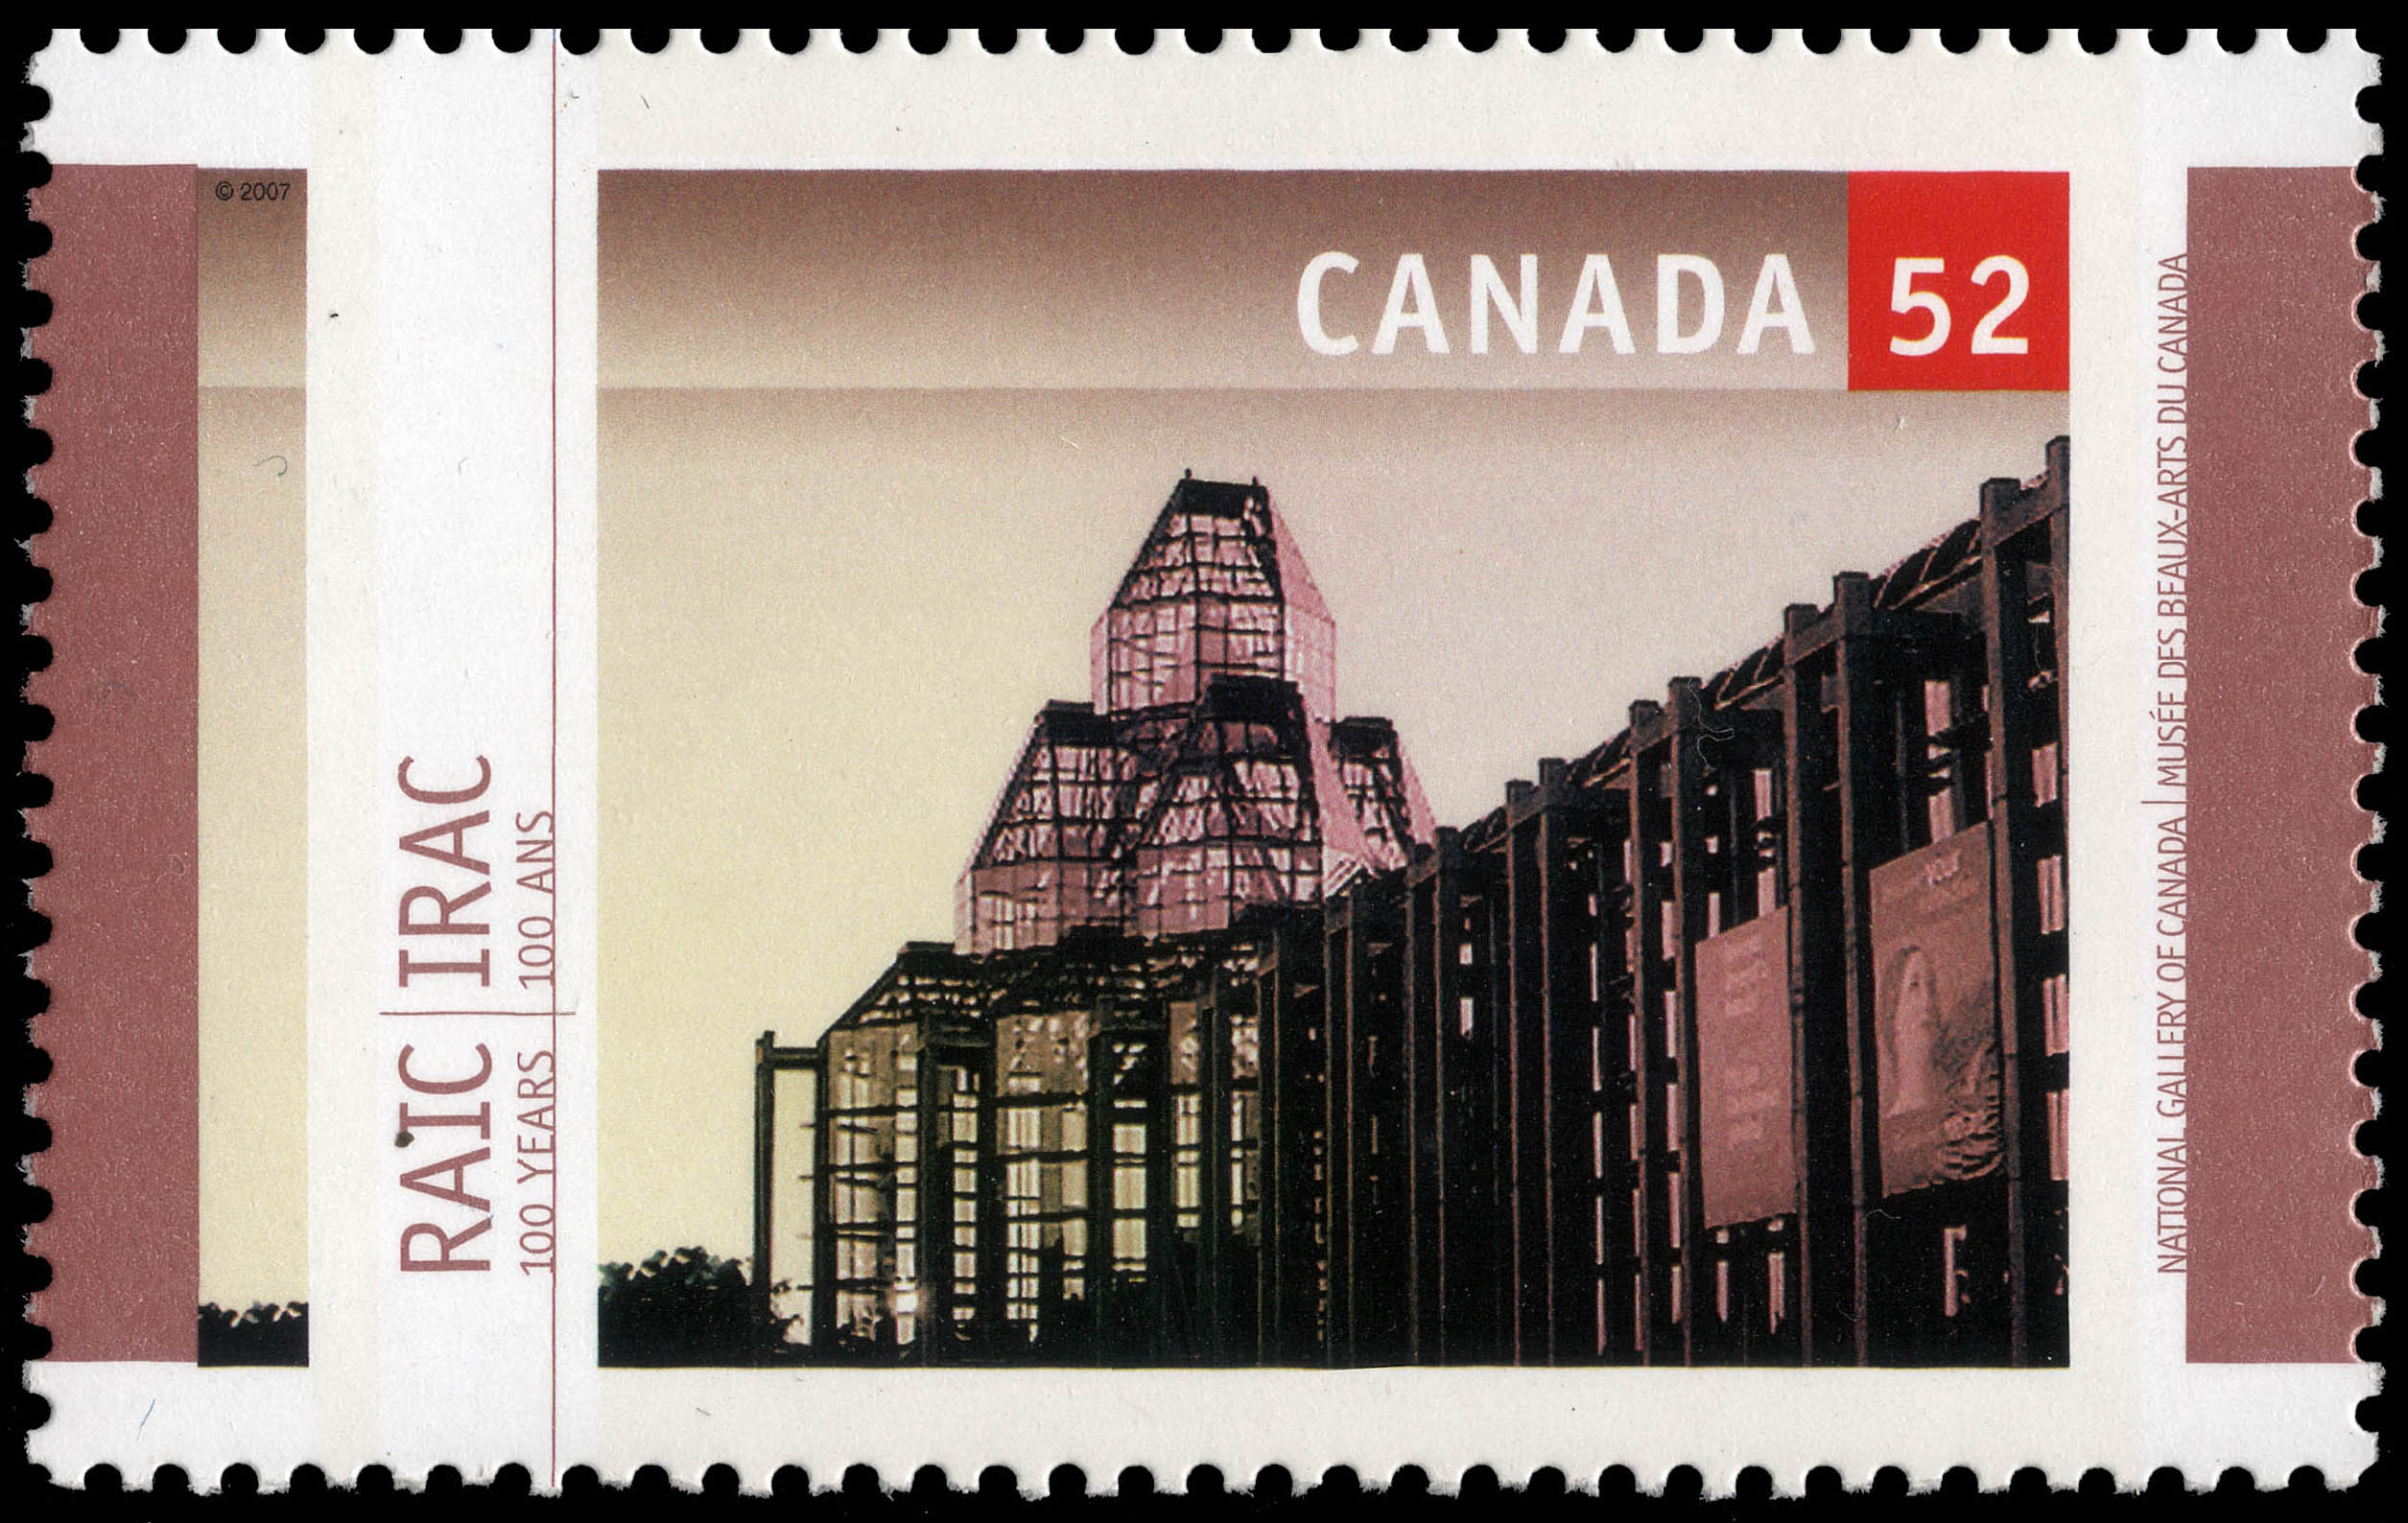 National Gallery of Canada Canada Postage Stamp | Royal Architectural Institute of Canada, 100 Years